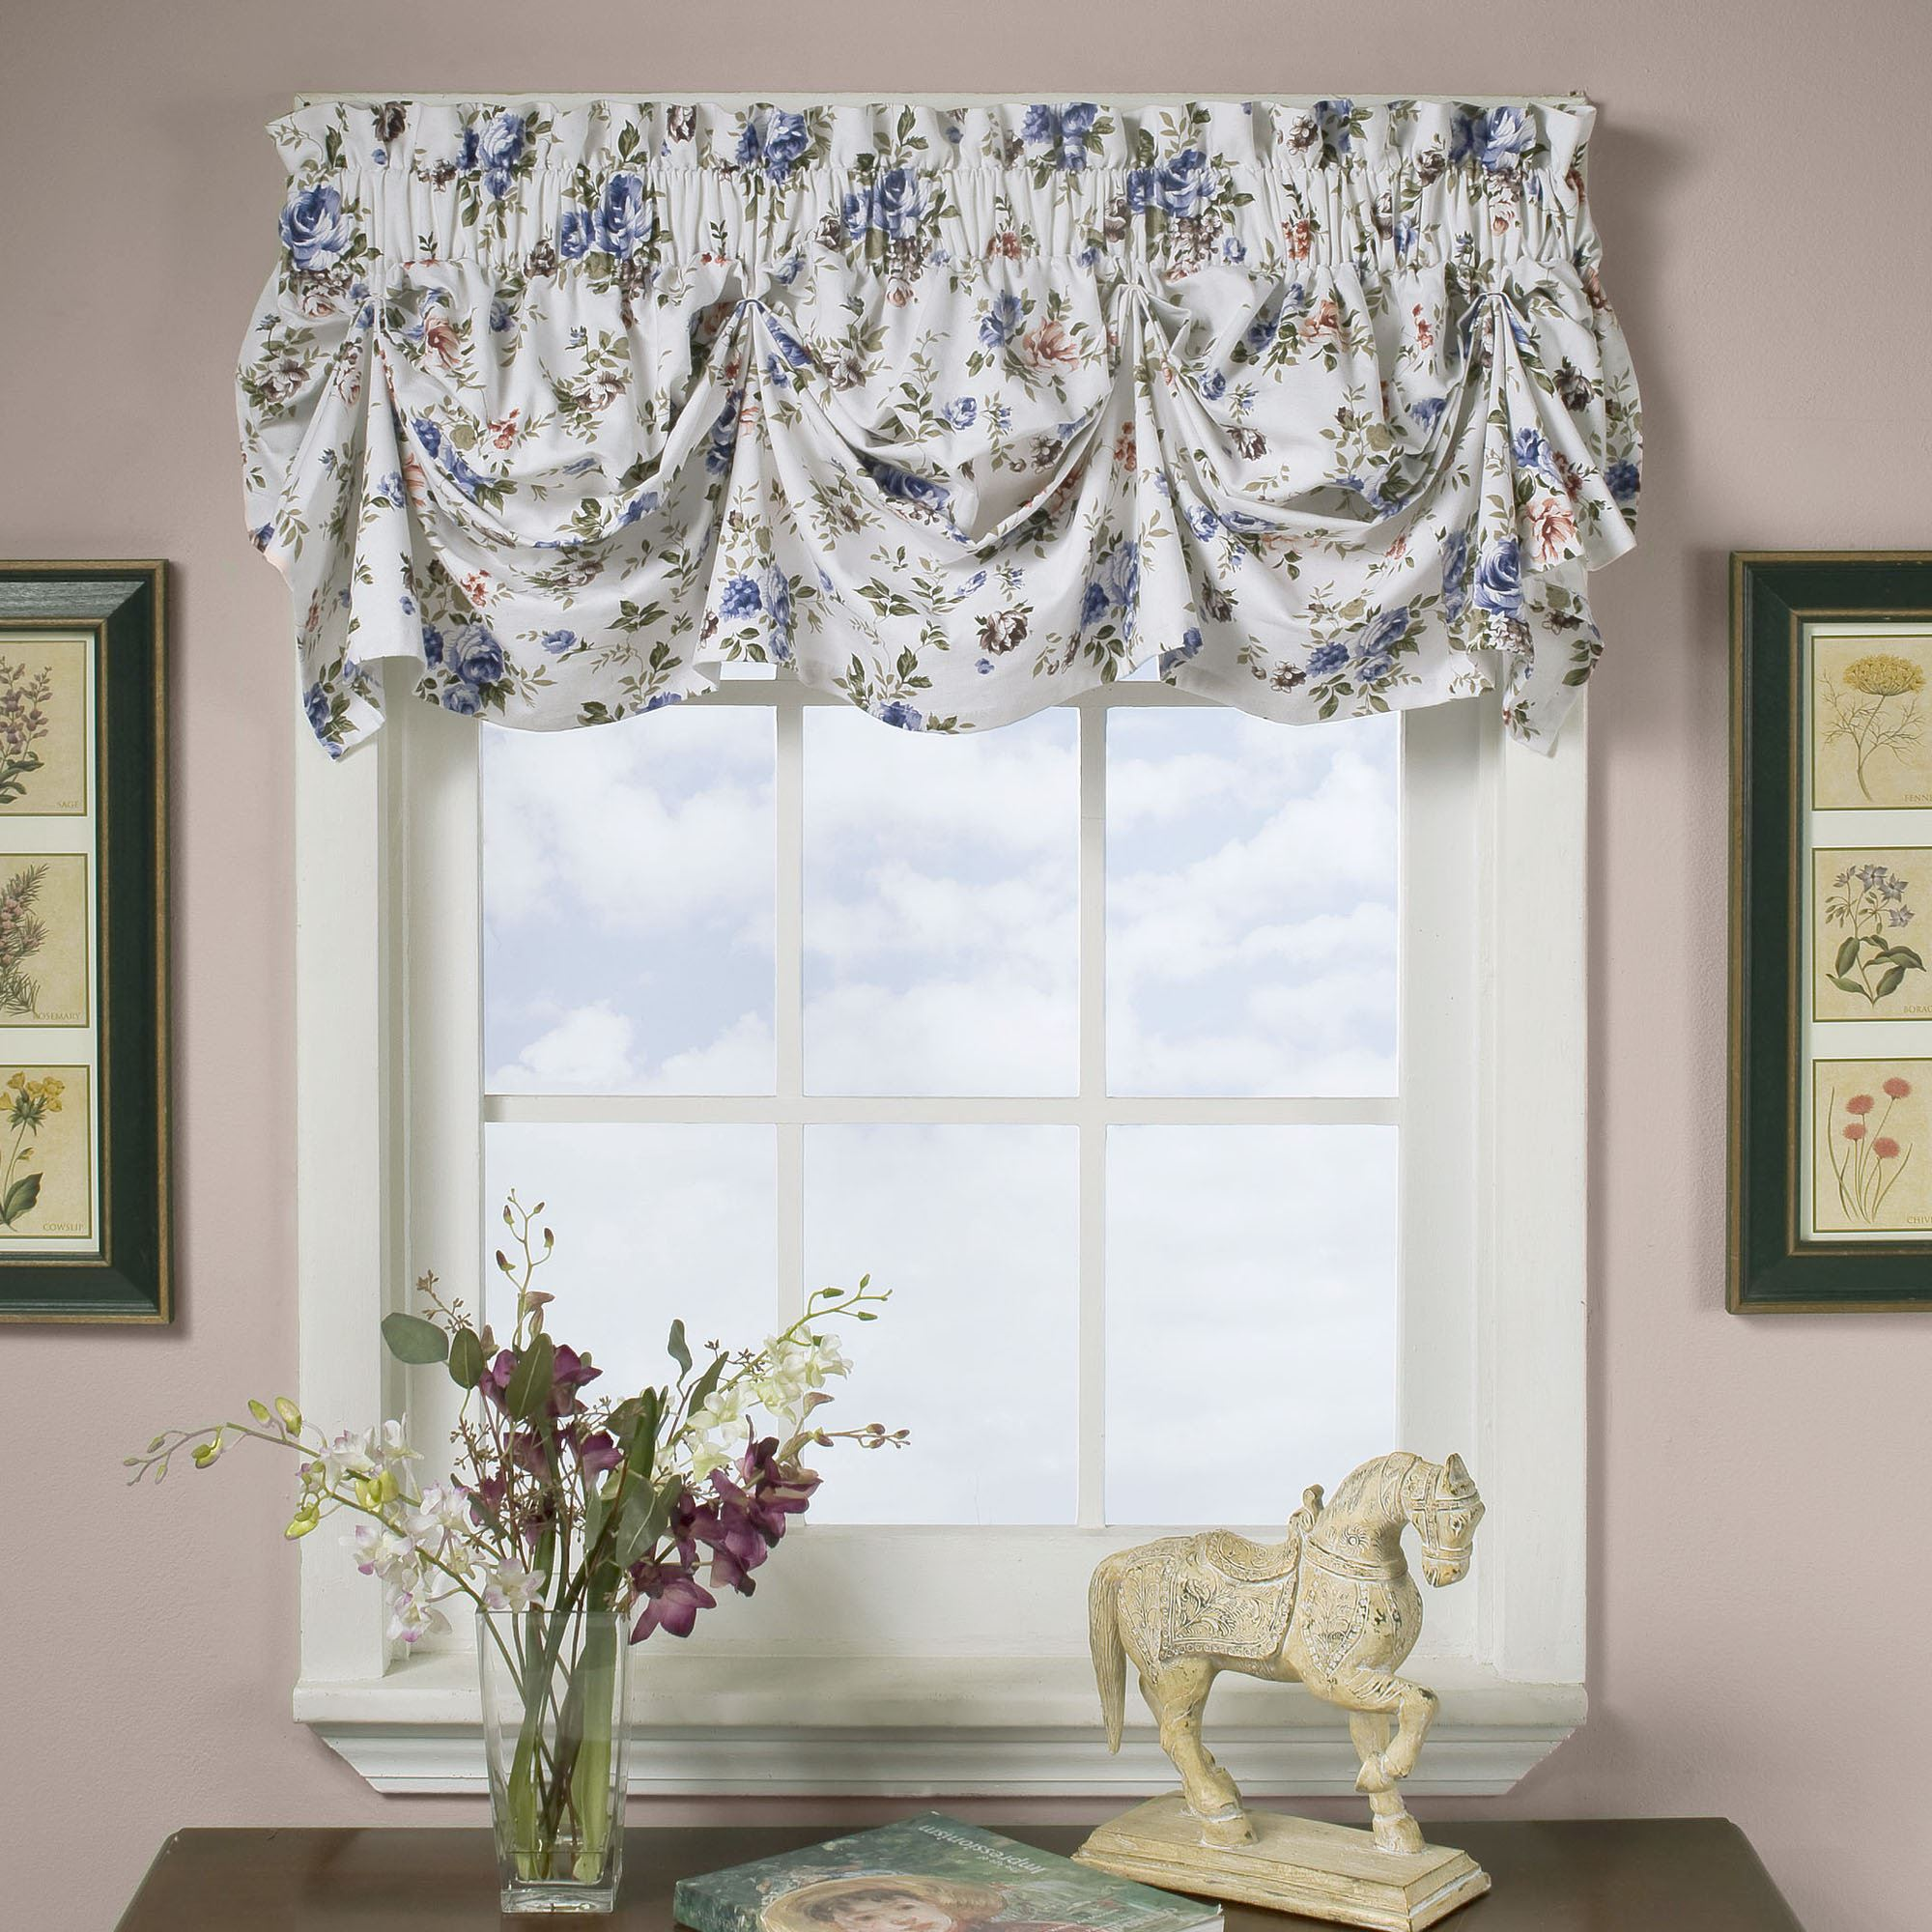 posey valances blue thecurtainshop com window swags white toppers black jasper valance